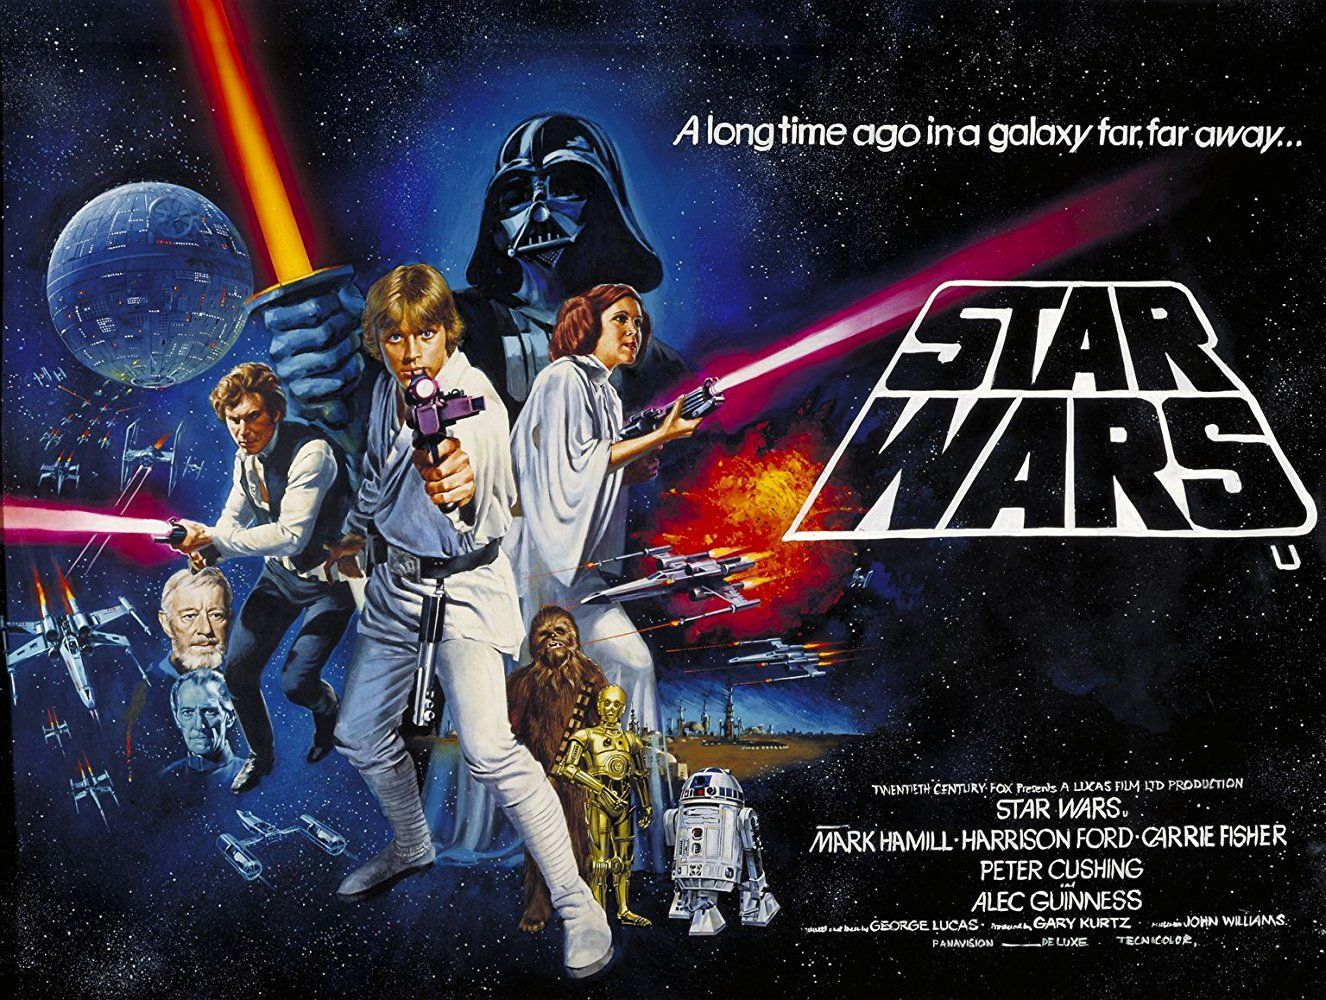 Star Wars Episode Iv A New Hope 1977 Imdb Star Wars Episode Iv Star Wars Movie Star Wars Trilogy